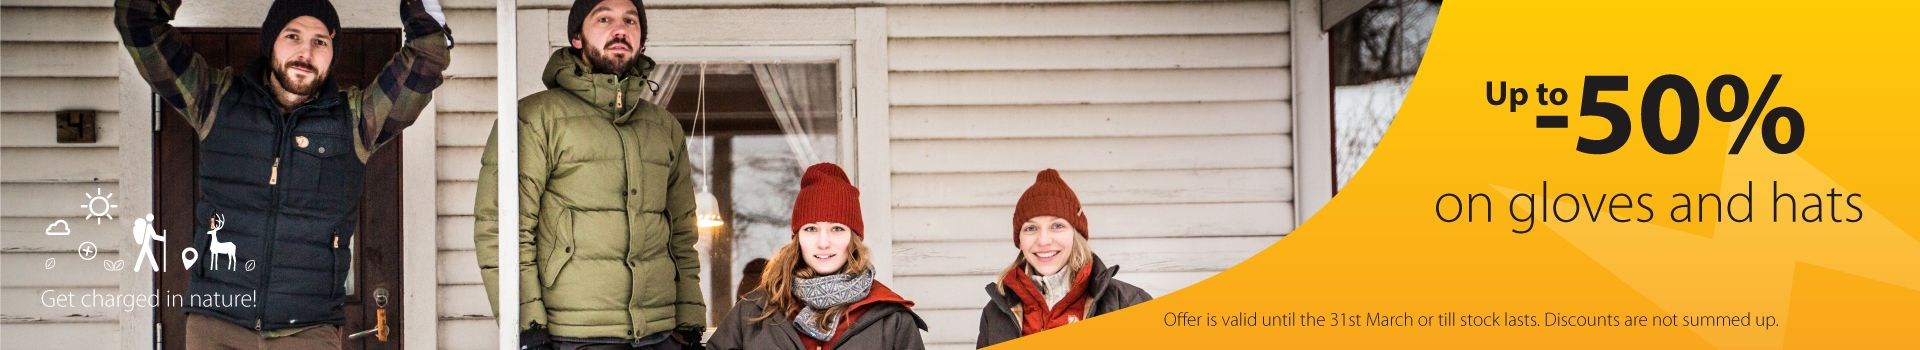 hats-and-gloves-up-to-50-percentage